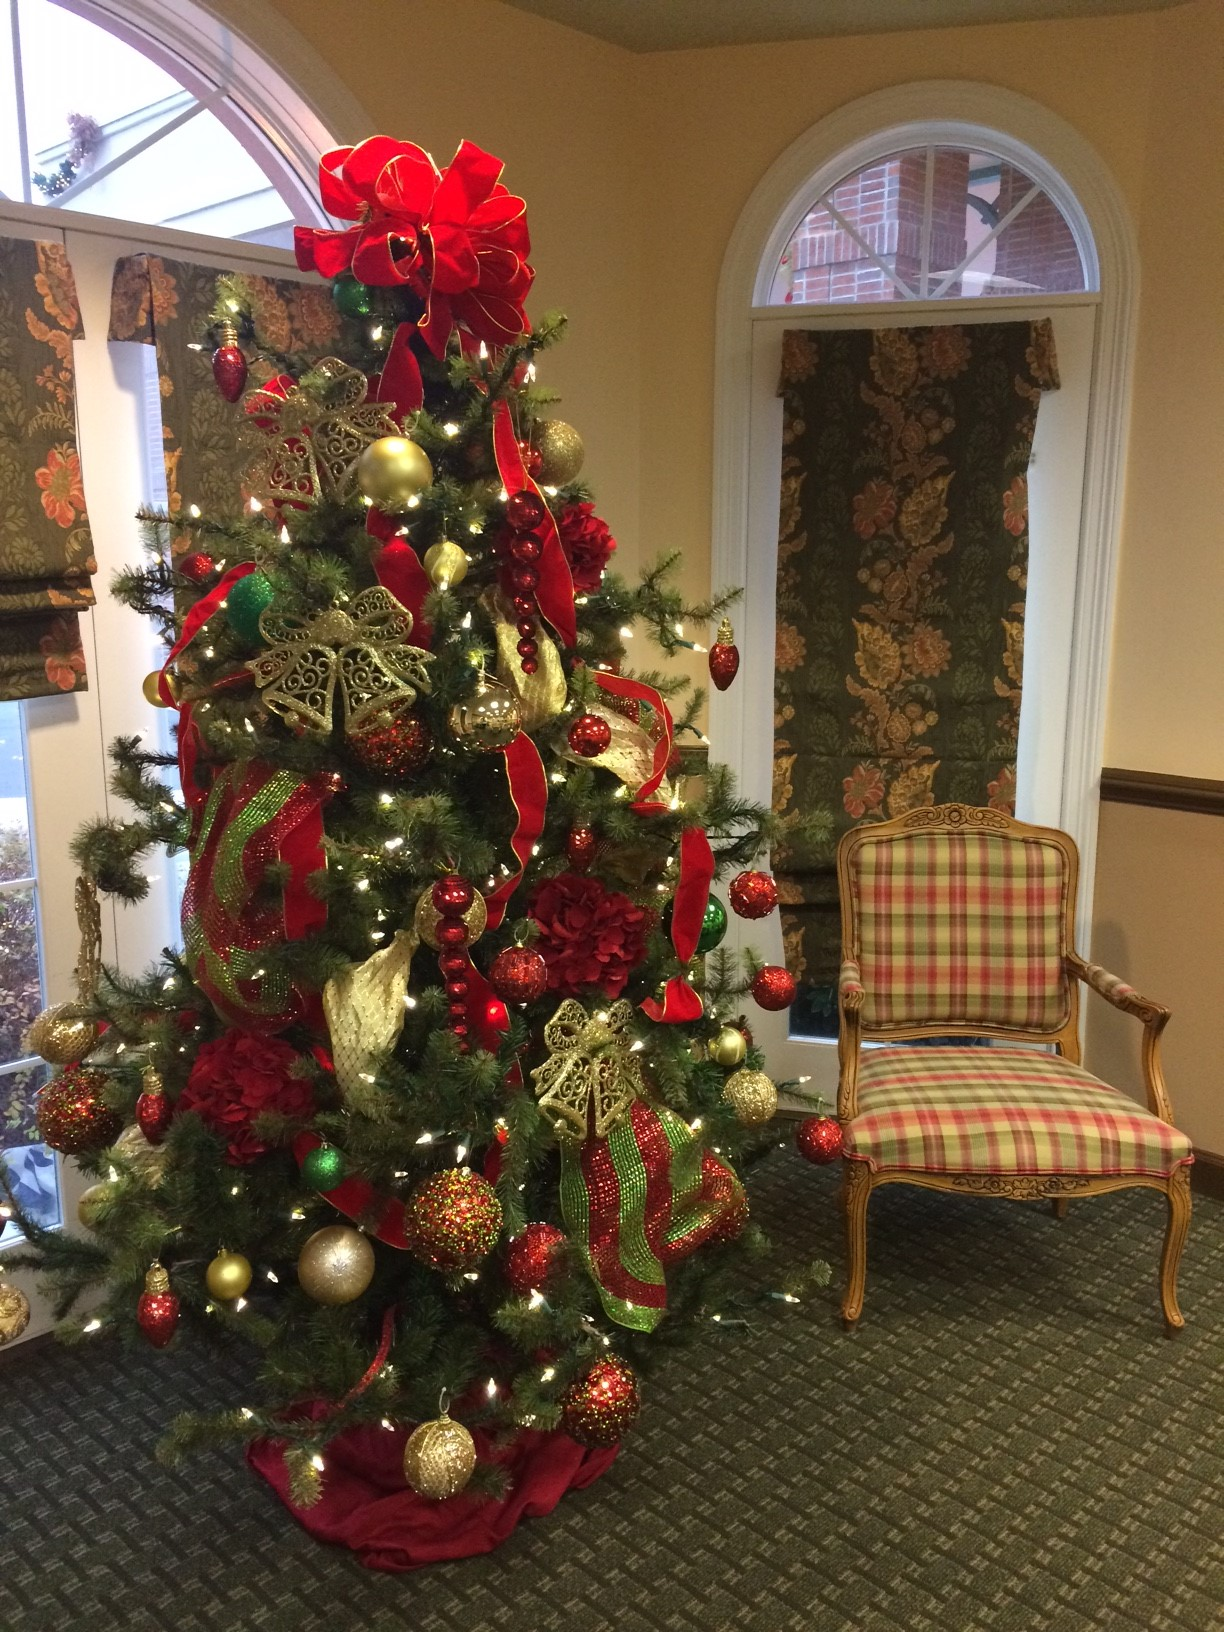 Christmas Decorations at the Village in Germantown Retirement Community